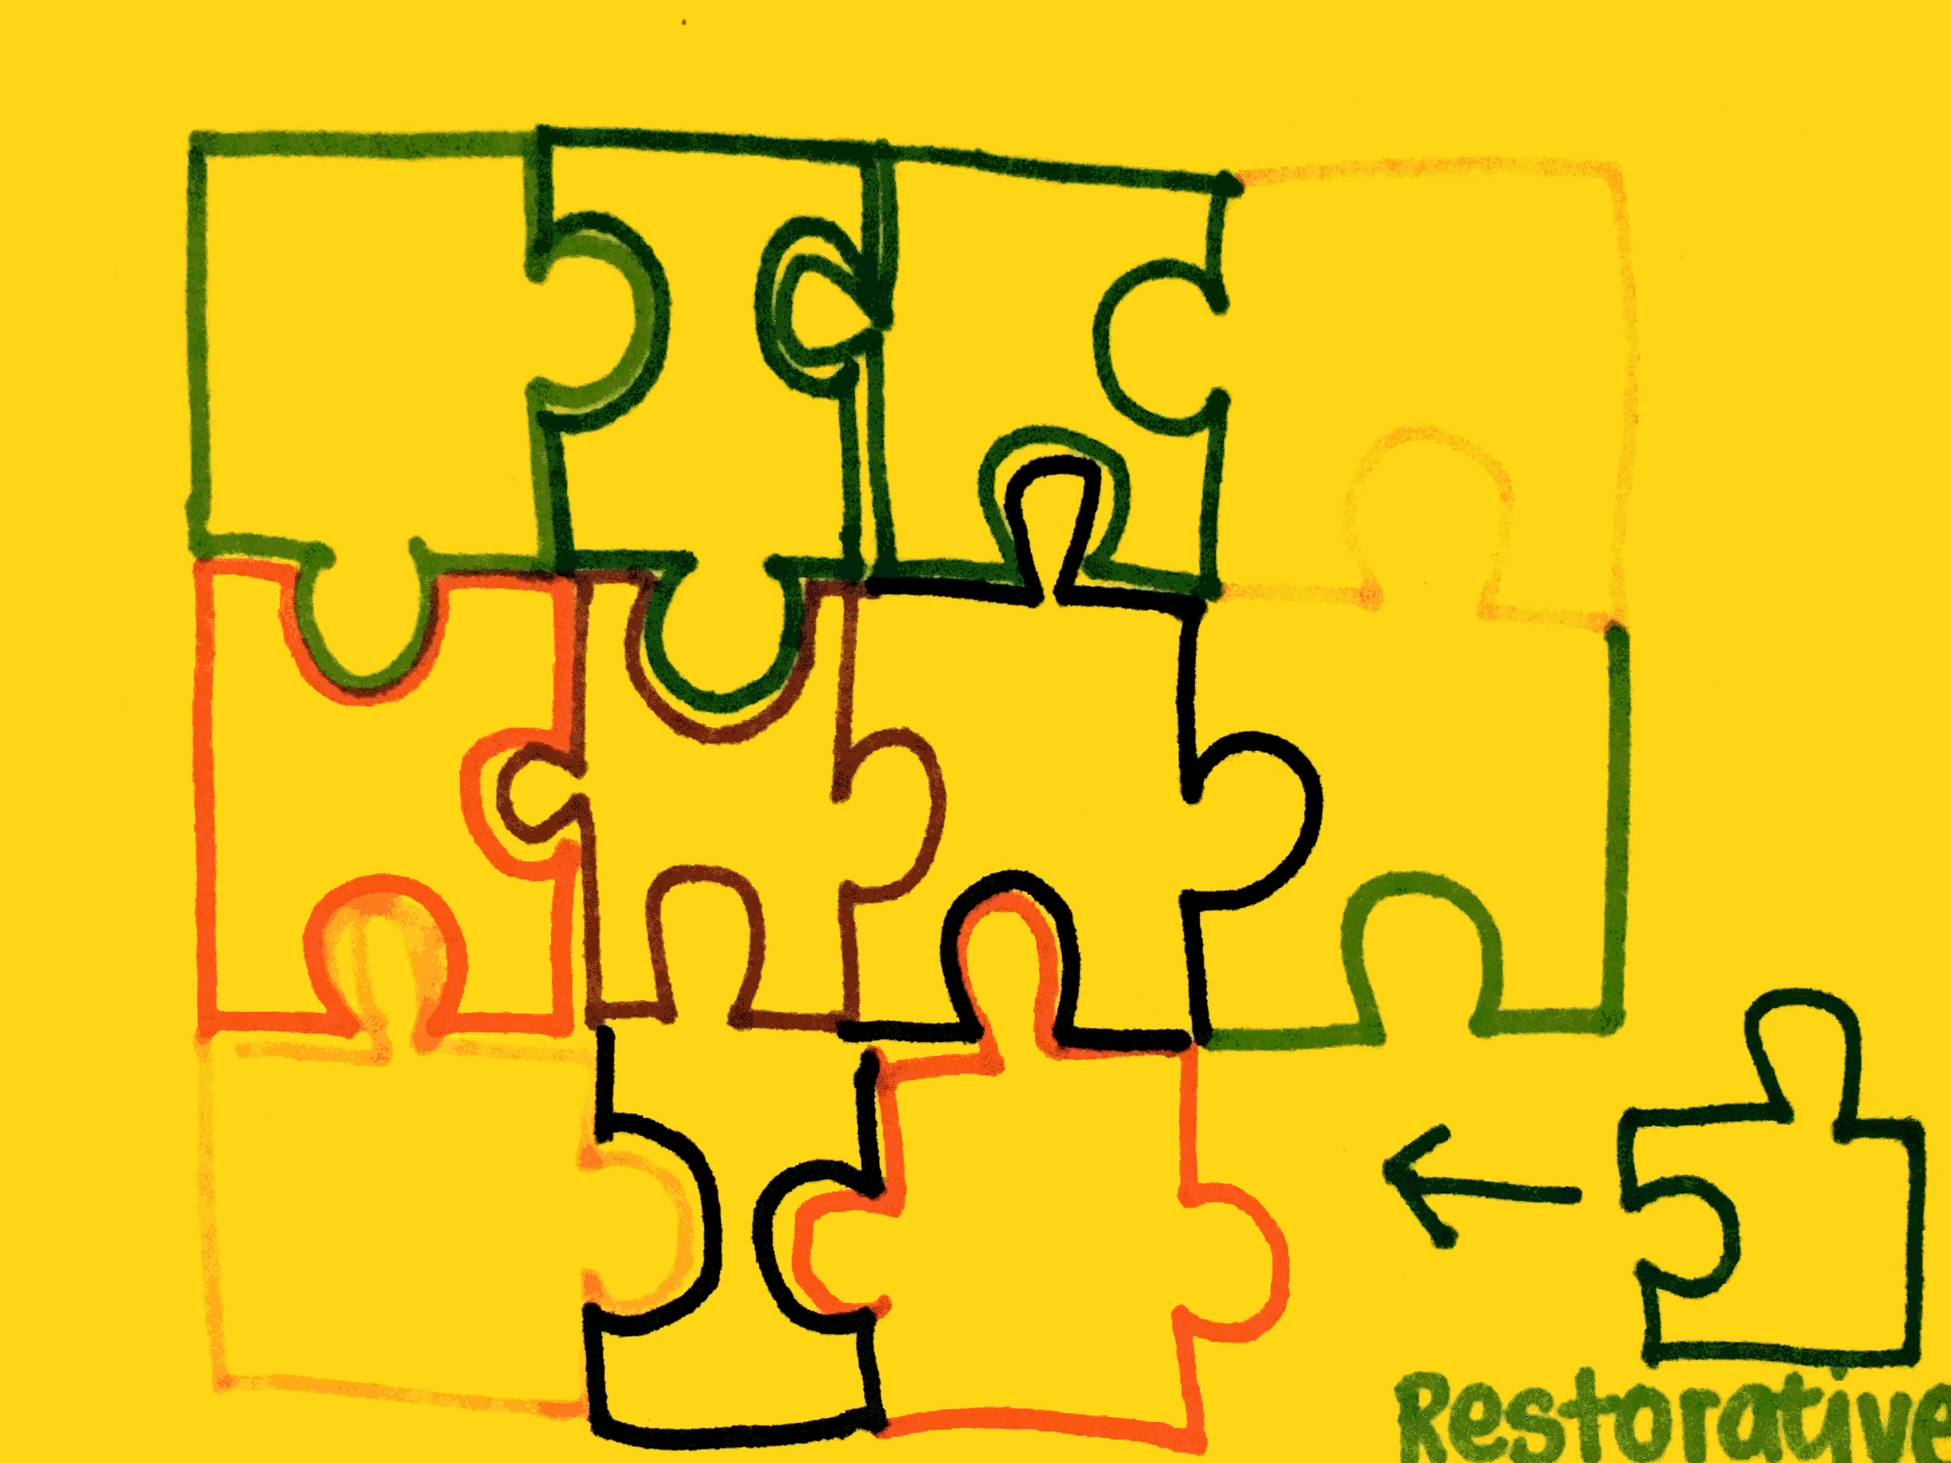 Restorative Strengthsfinder Puzzle Fixing